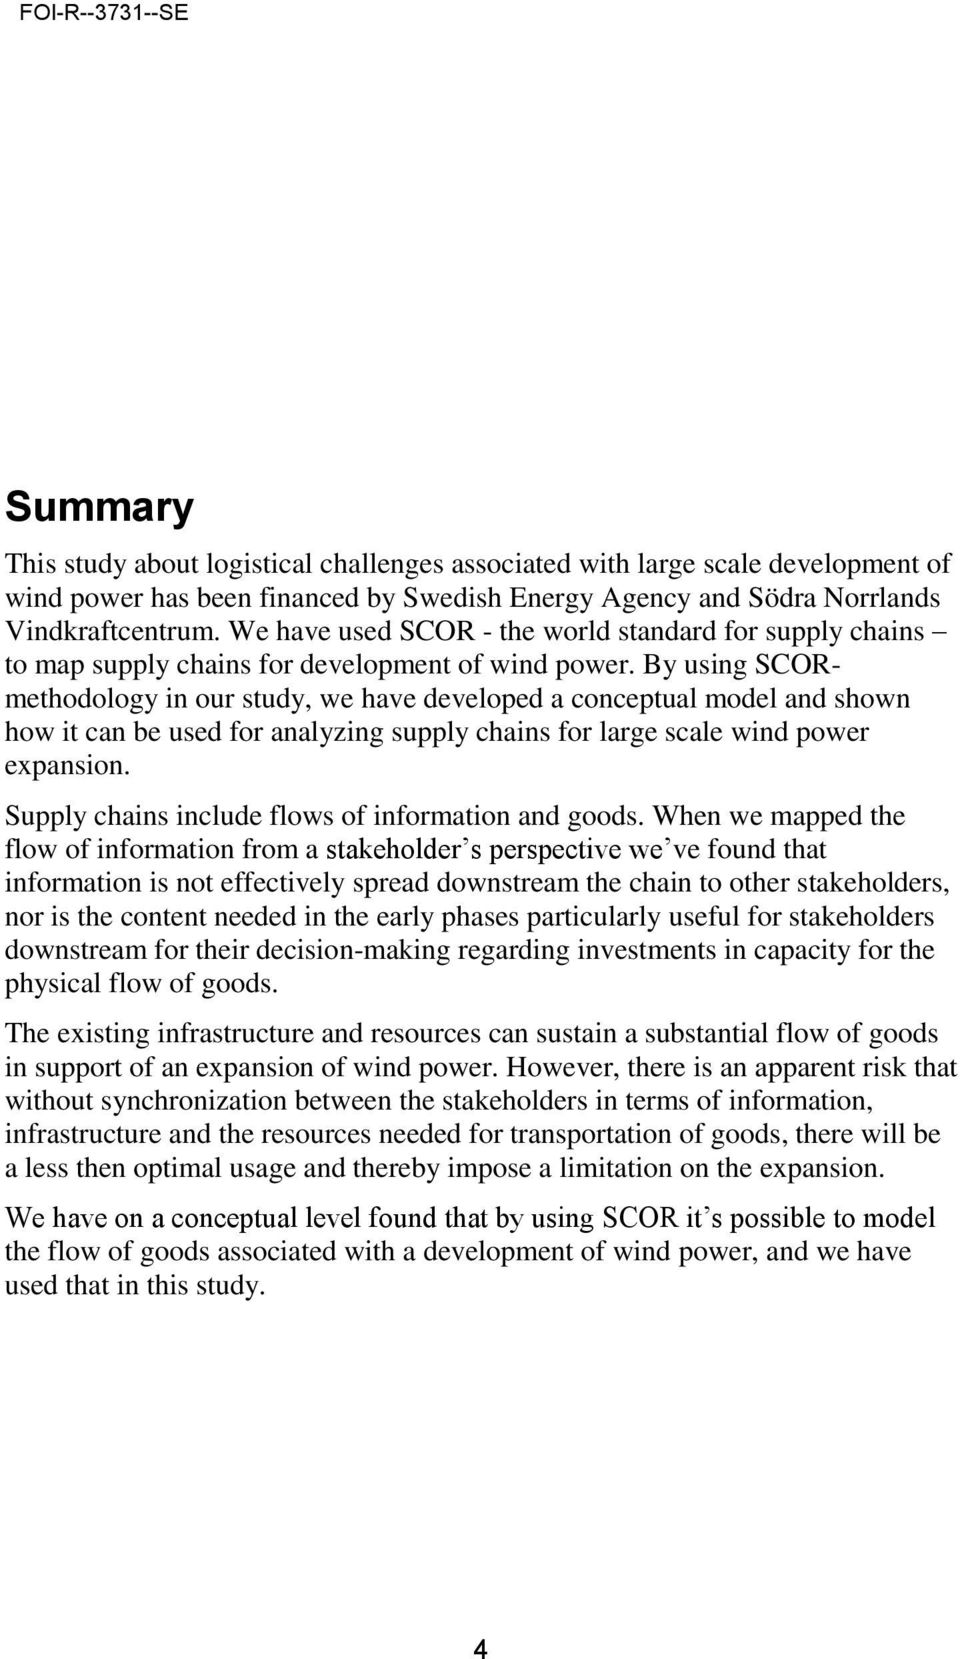 By using SCORmethodology in our study, we have developed a conceptual model and shown how it can be used for analyzing supply chains for large scale wind power expansion.